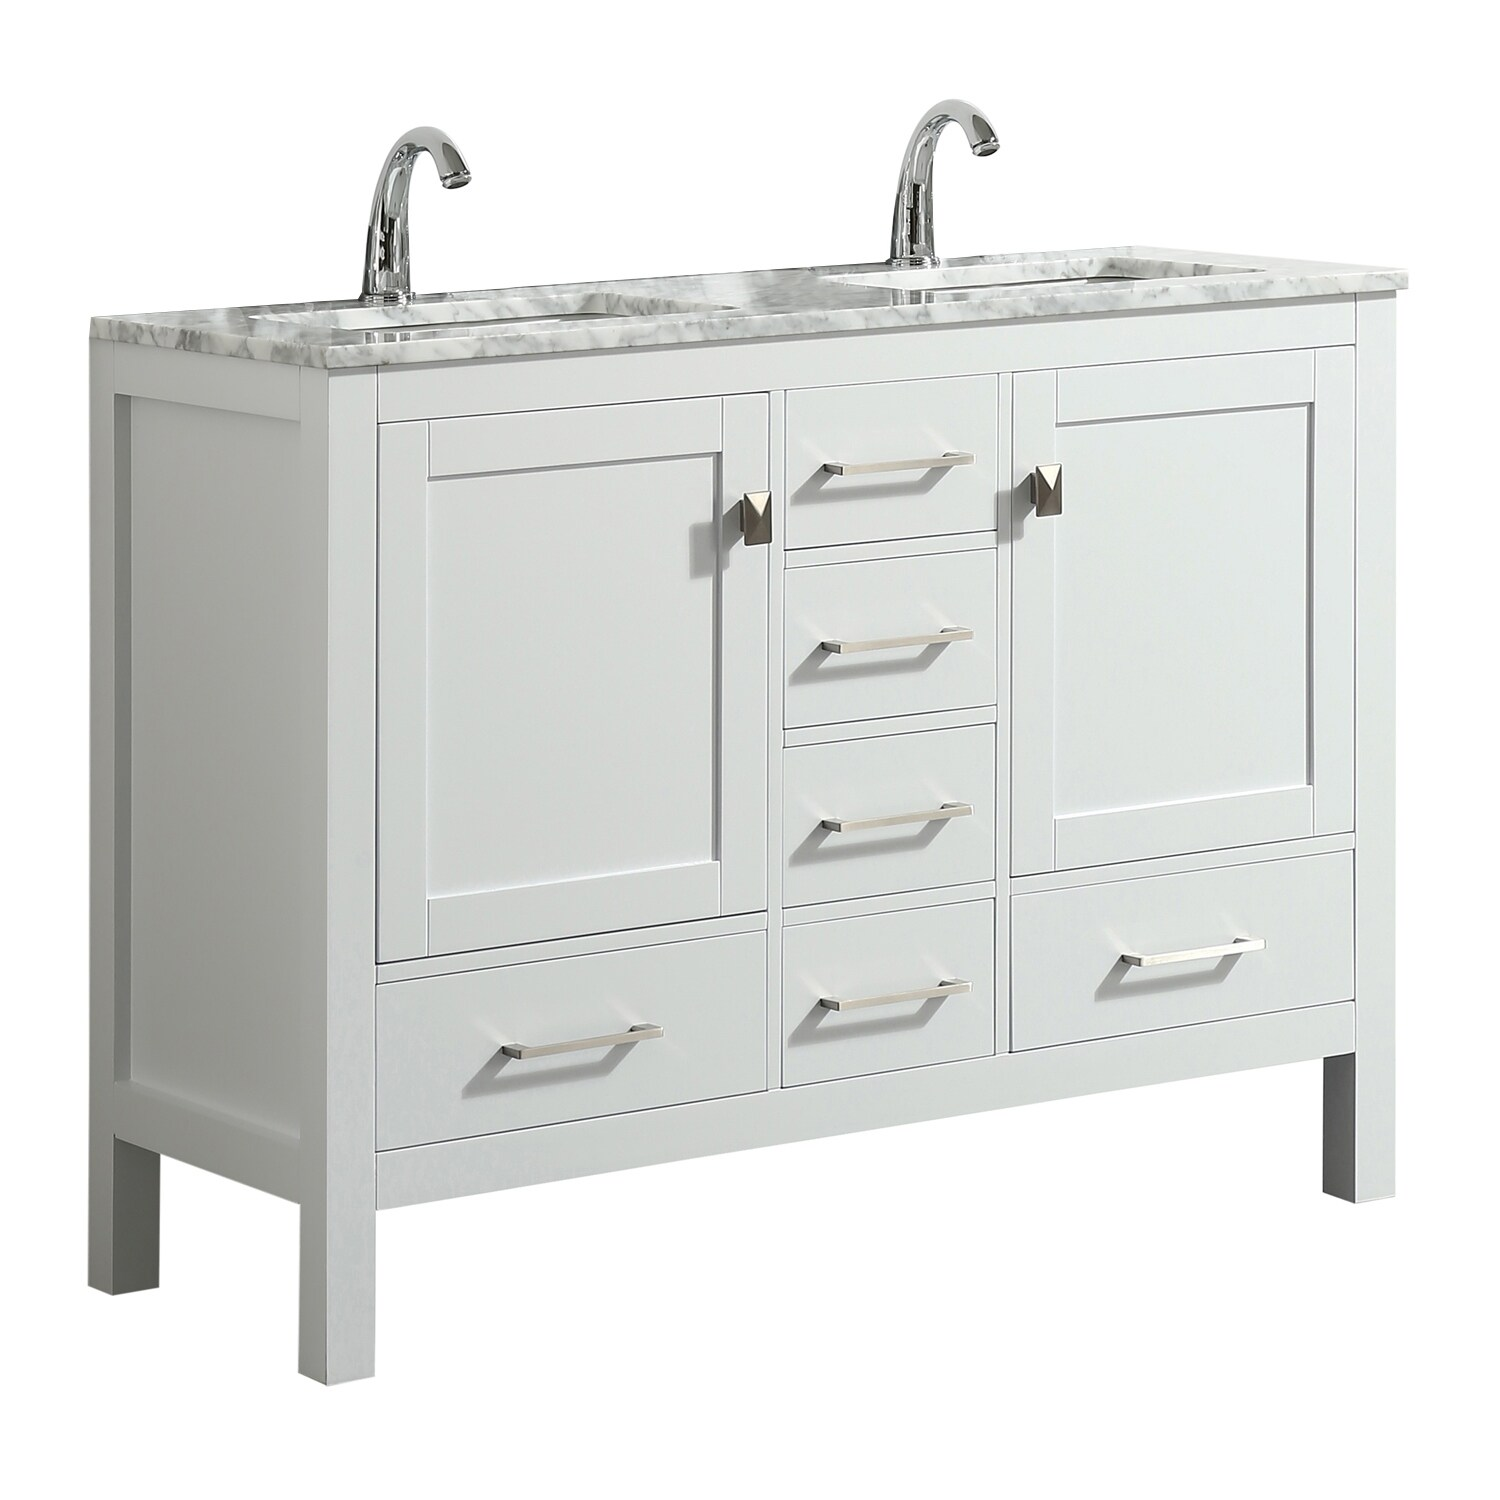 Shop Eviva London 48 X 18 Inch White Transitional Double Sink Vanity With White Carrara Marble And Undermount Porcelain Sinks Overstock 23565163